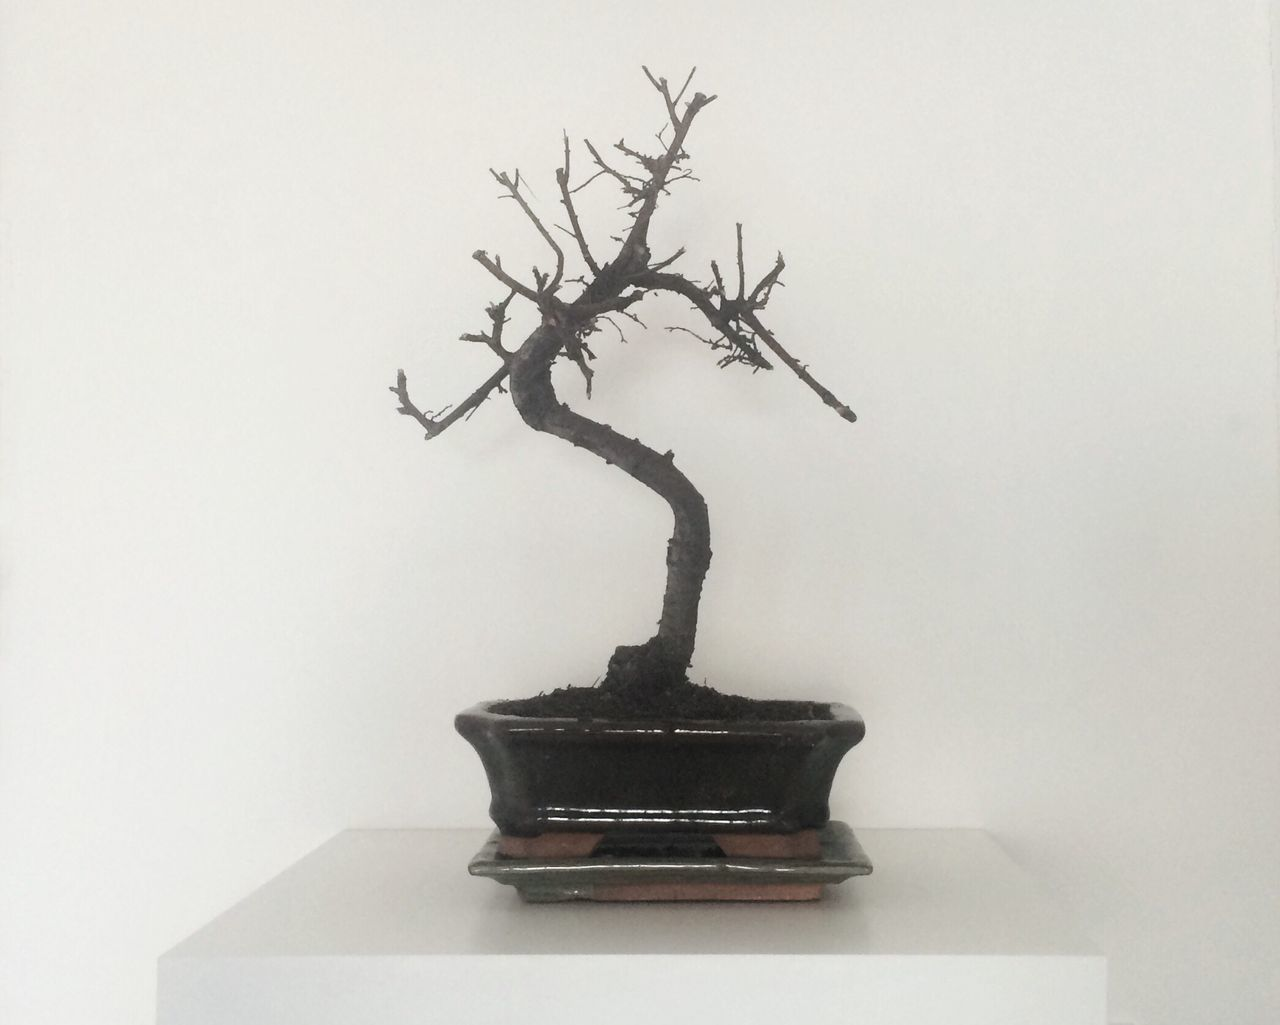 Growth Table Tree No People Bonsai Mindfulness Calm Chill Indoors  Decoration Plant Oxygen Japanese  Miniature Zen Garden B&w Home Seasons Deep Natural